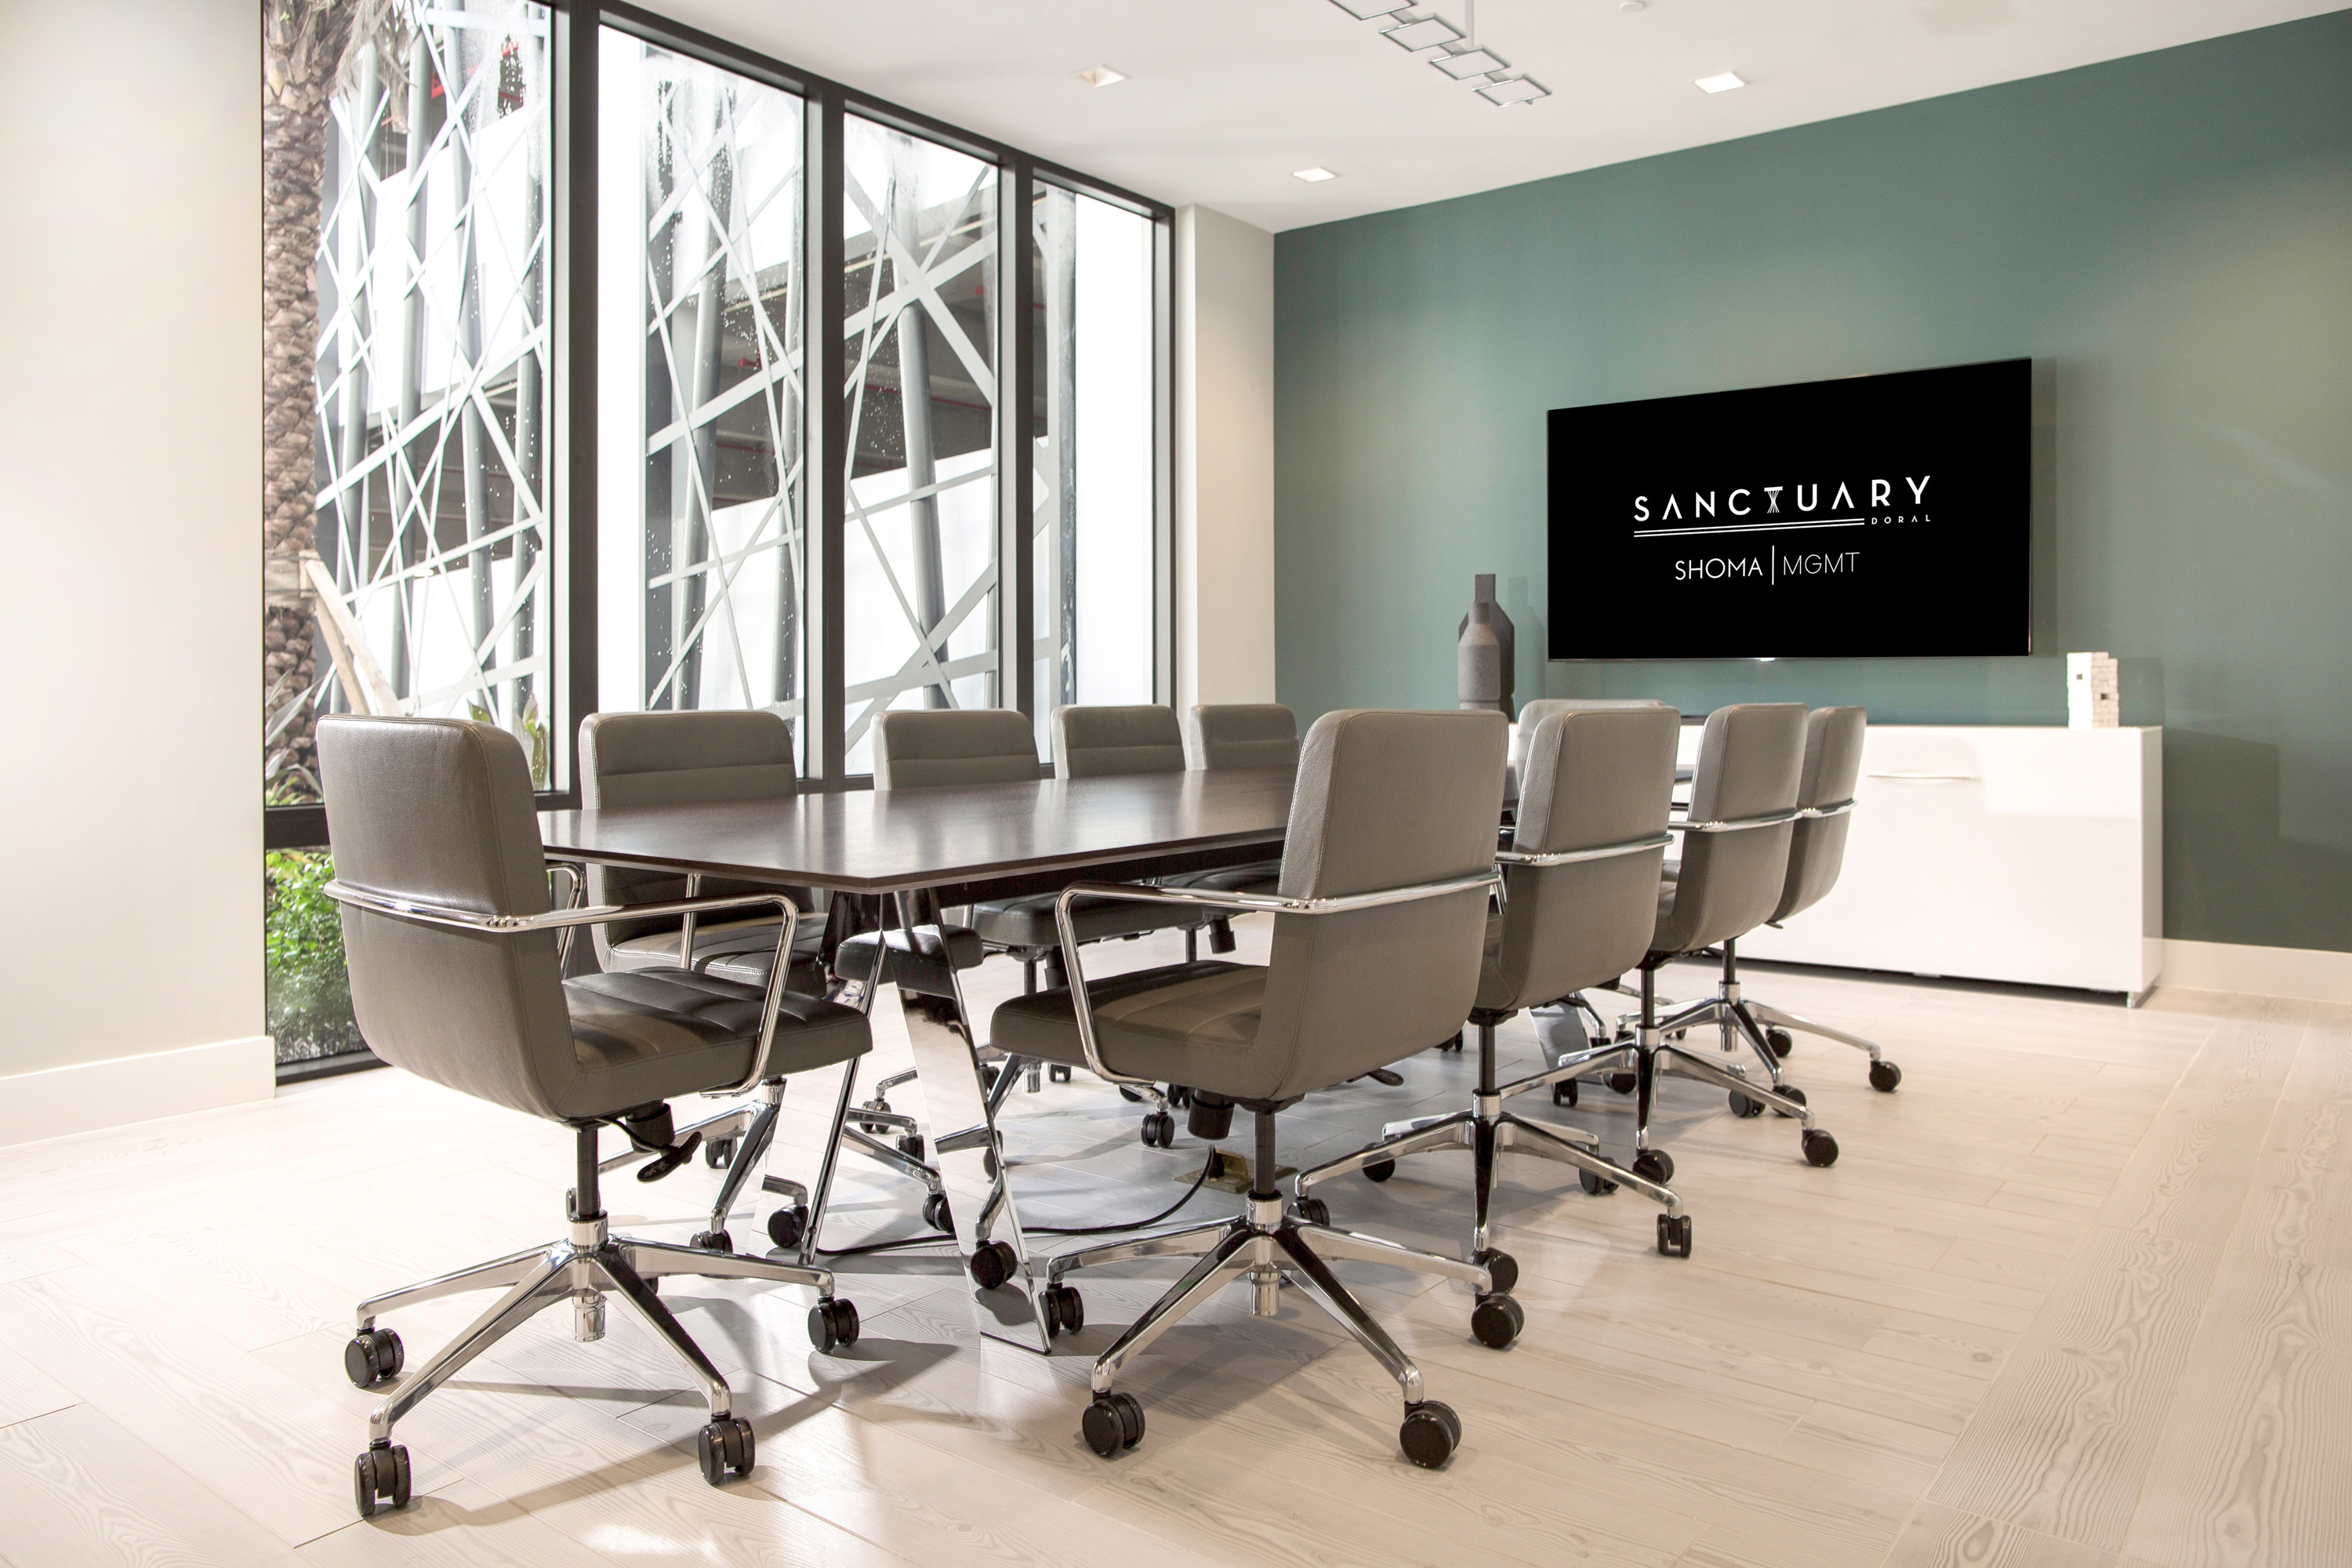 conference room at sanctuary doral